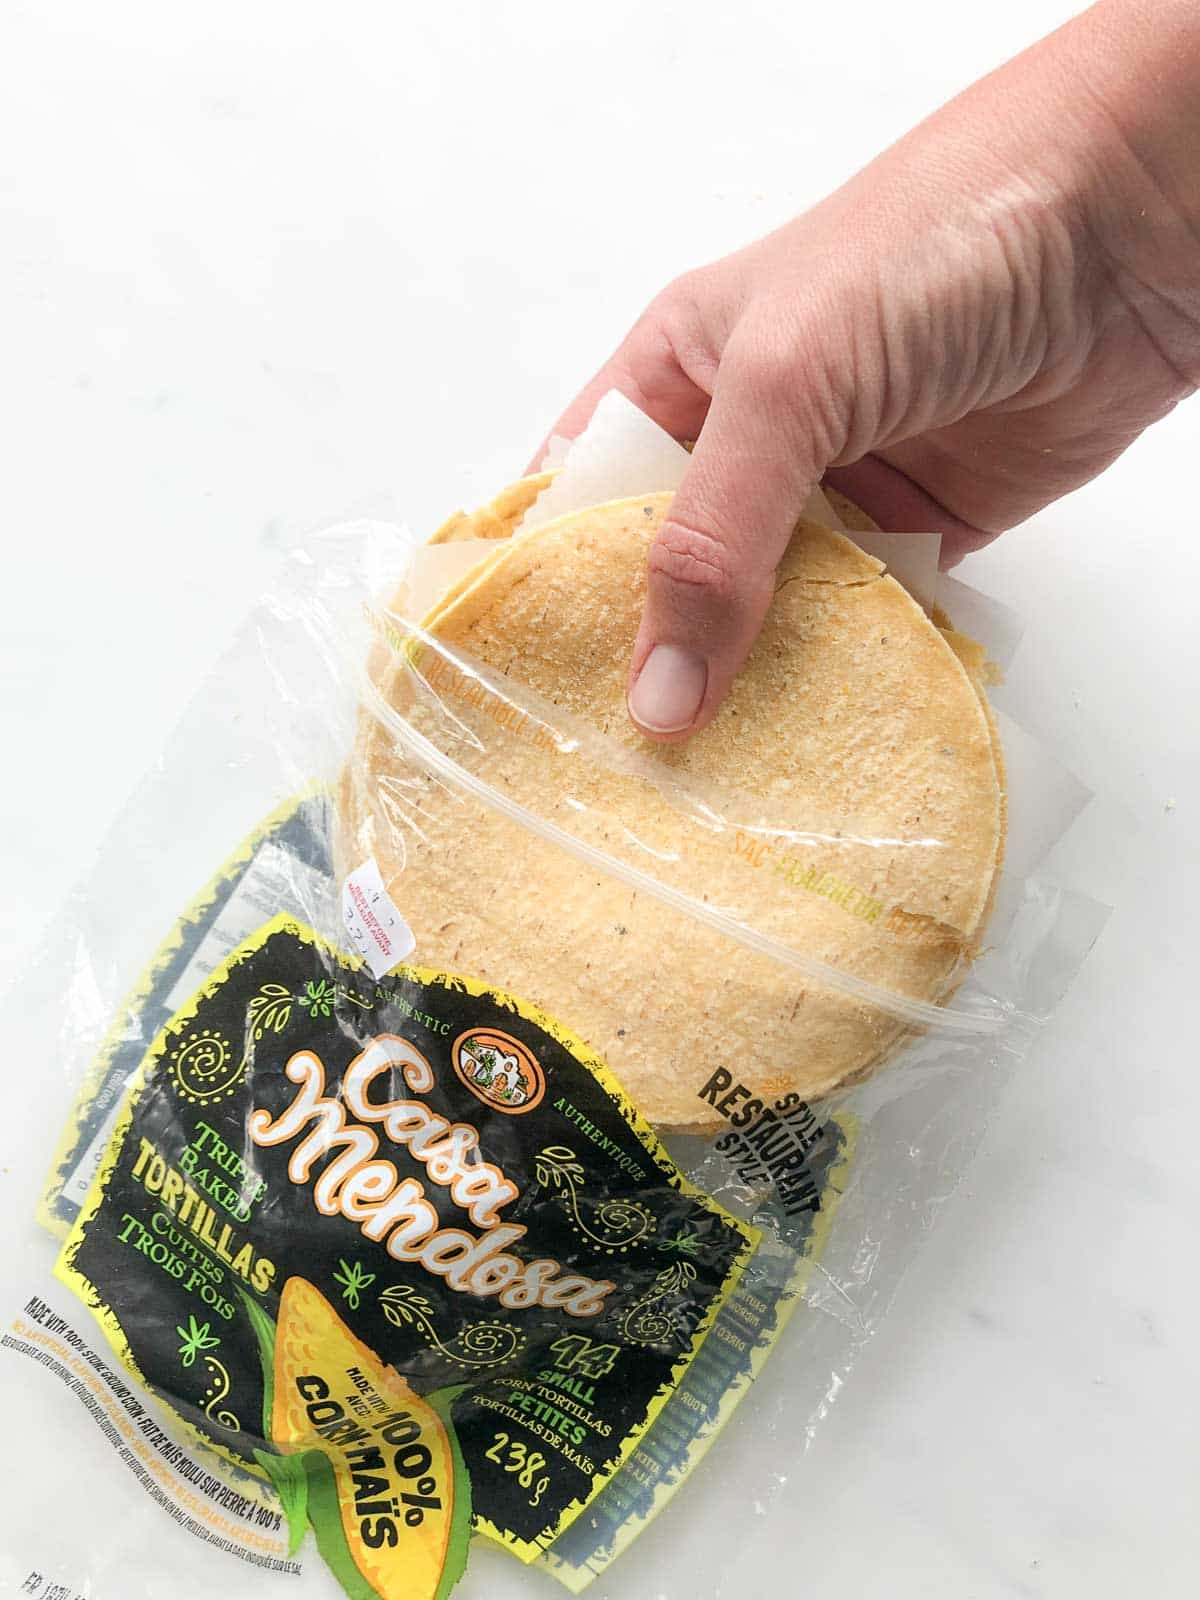 Bag of corn tortillas with a hand removing the tortillas